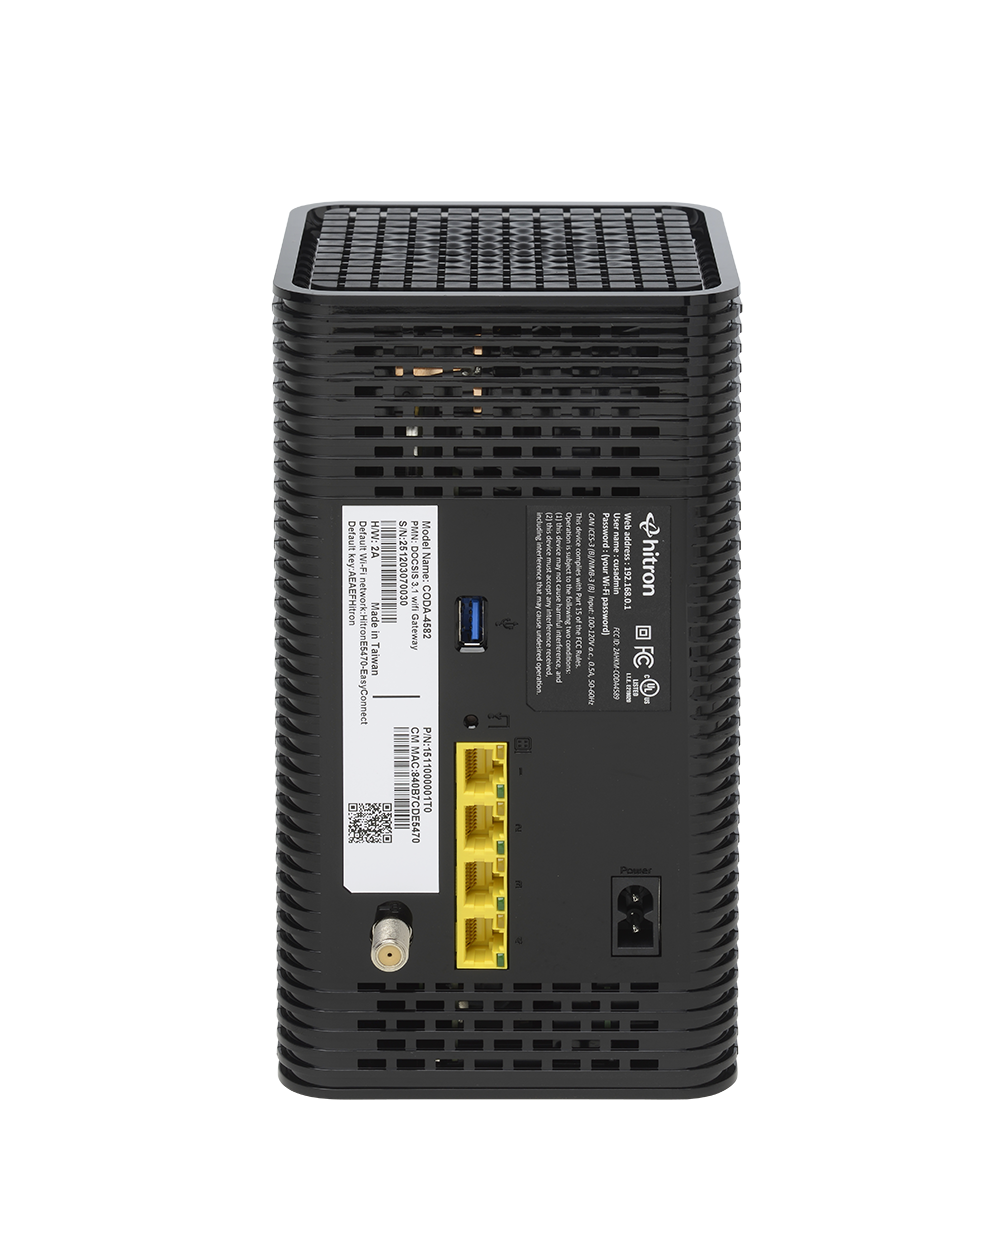 DOCSIS 3.1 Cable Modem Router from Hitron - CODA-4582